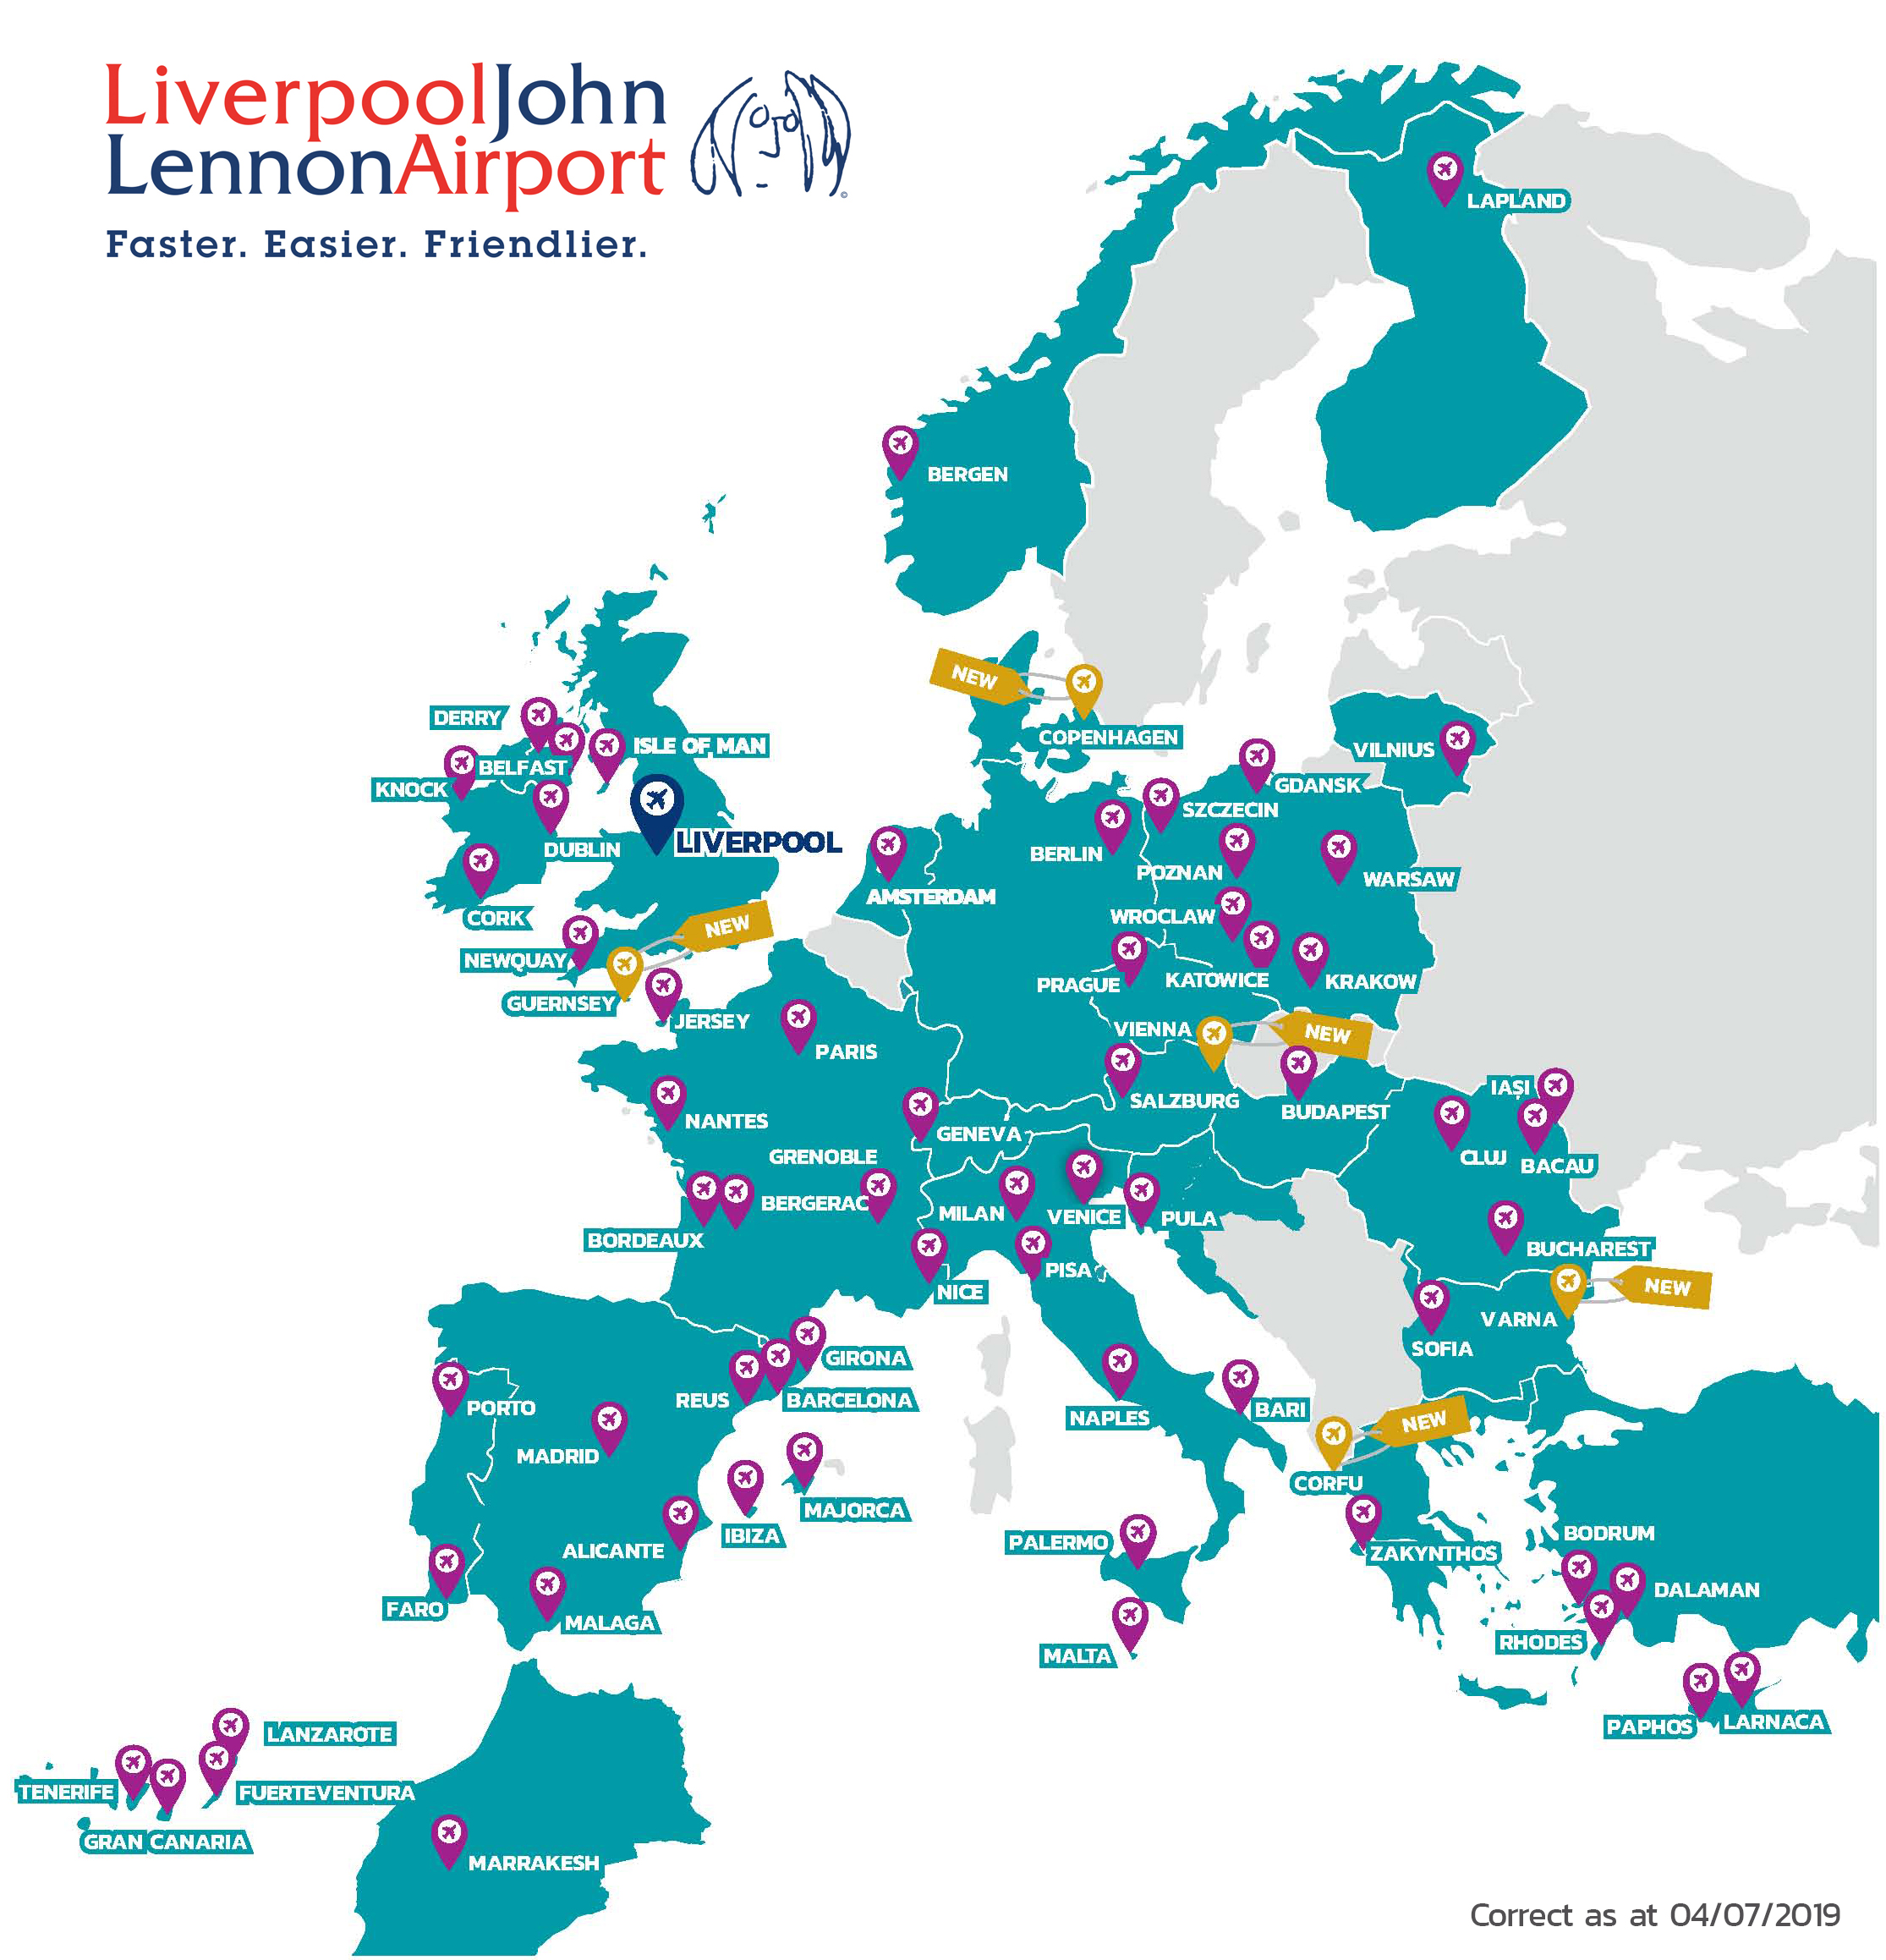 Destinations from Liverpool John Lennon Airport